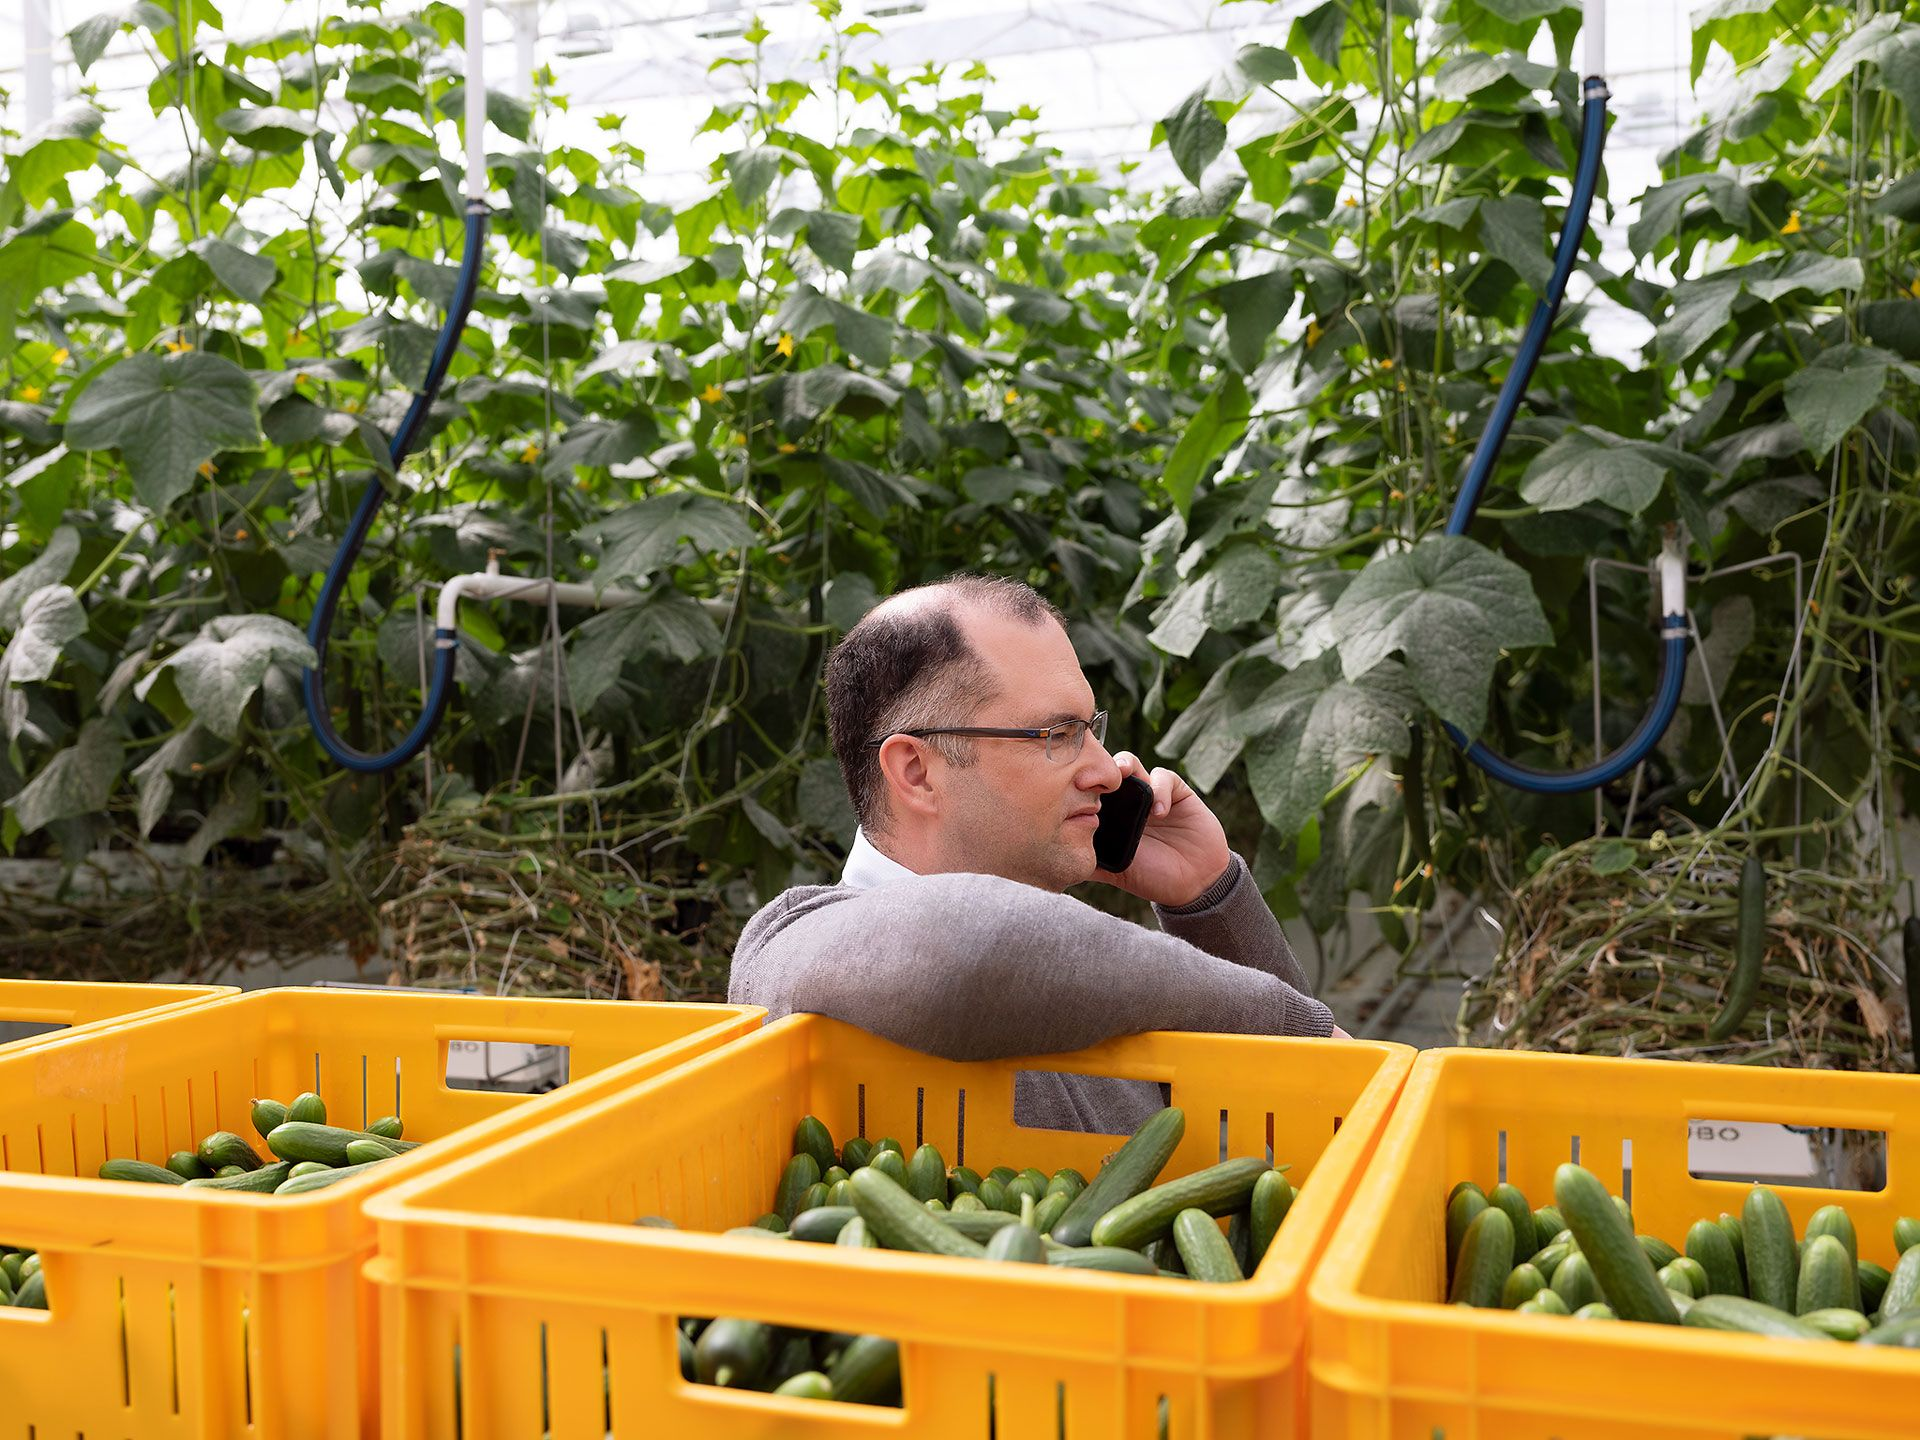 Founder of Serres Toundra speaking on the phone by crates of cucumbers in a greenhouse.